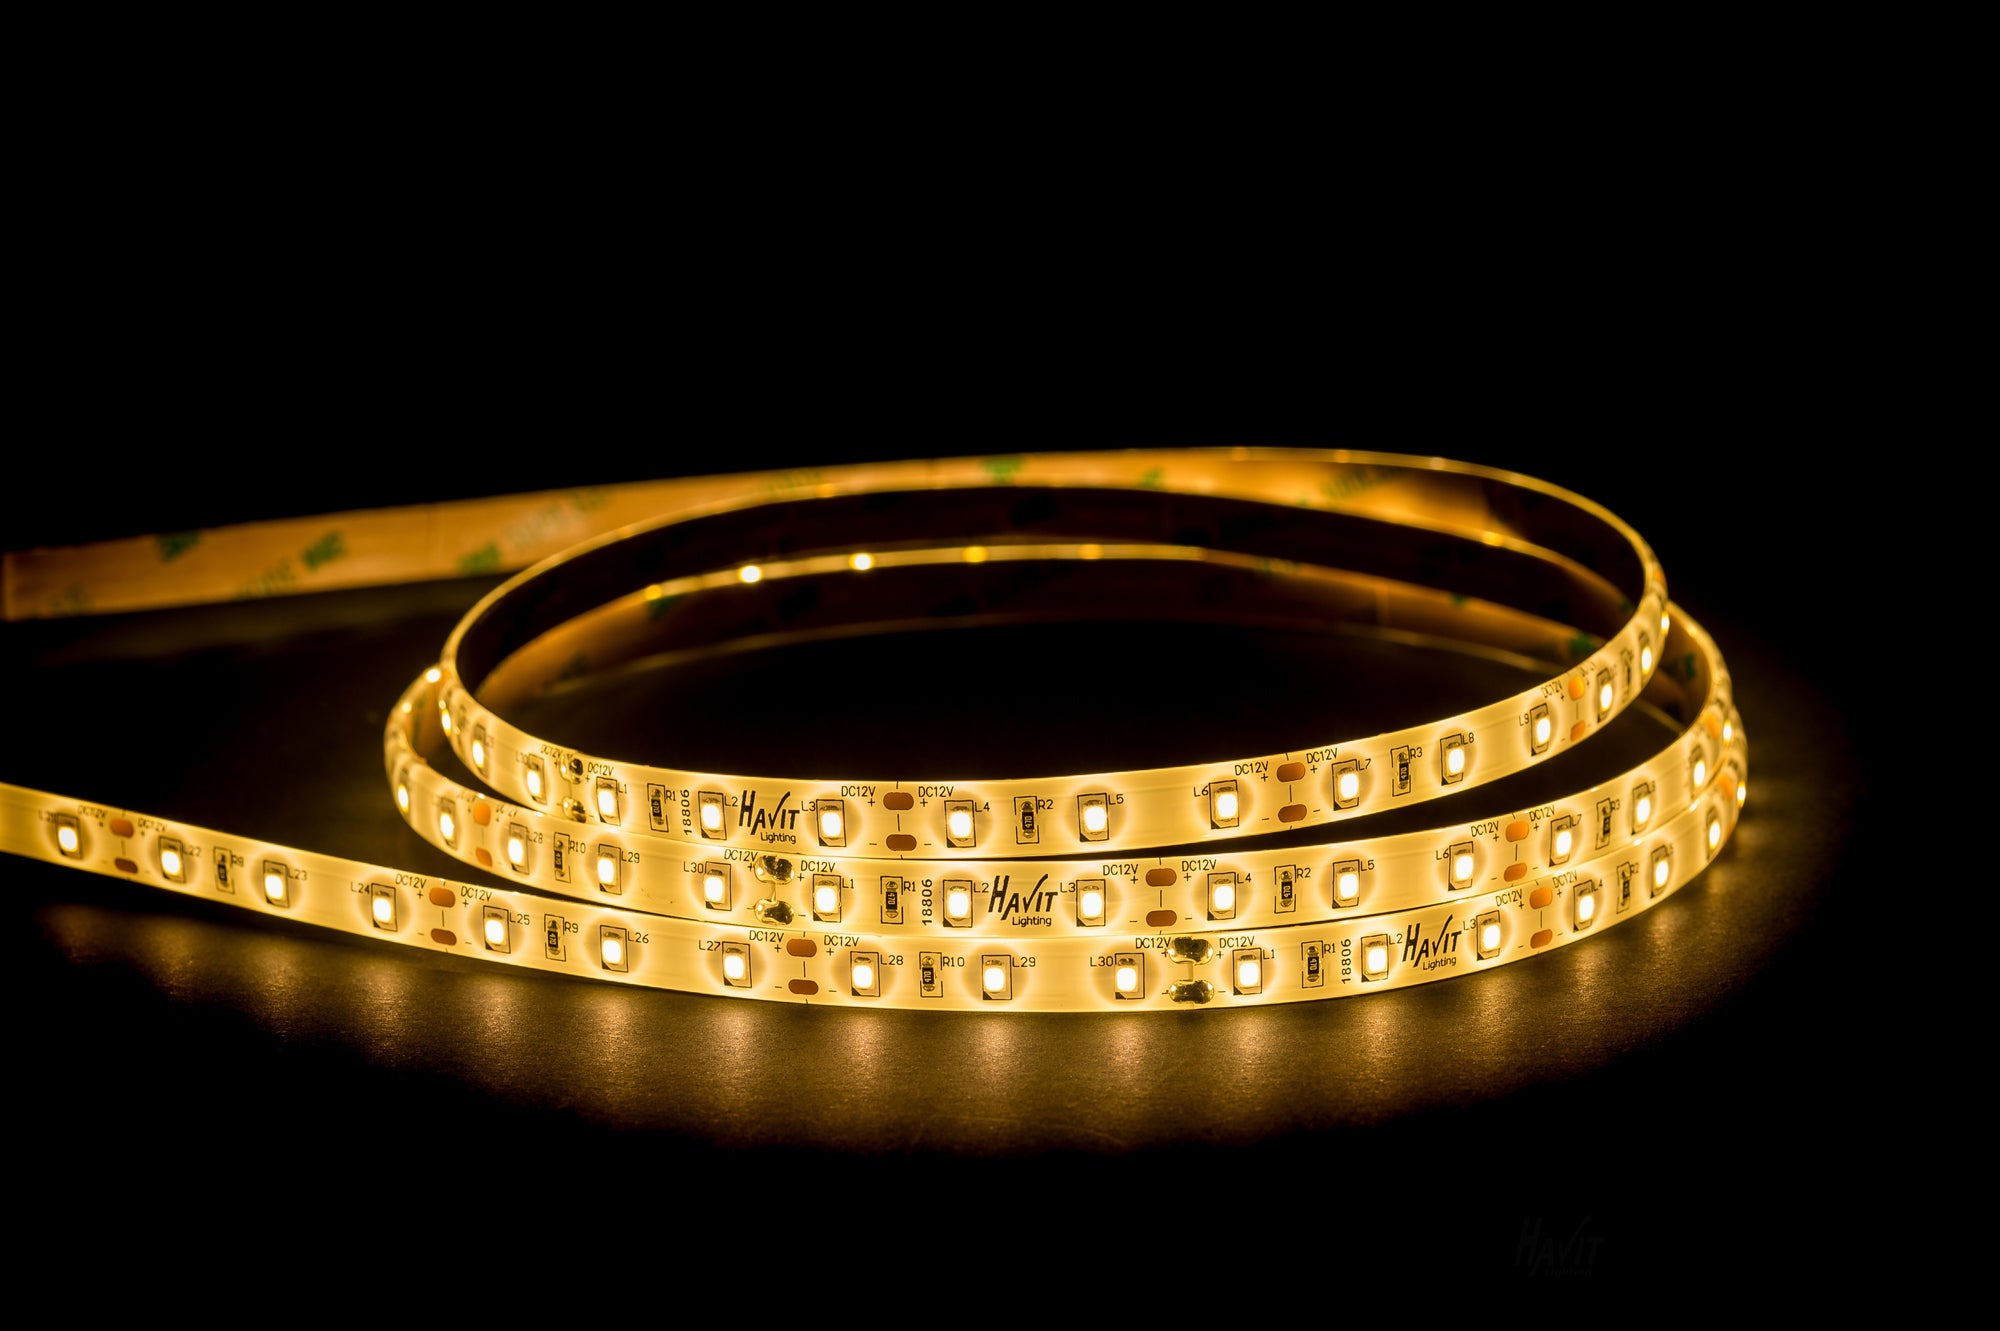 HV9783-IP54-60-3K - 14.4w IP54 LED Strip 3000k